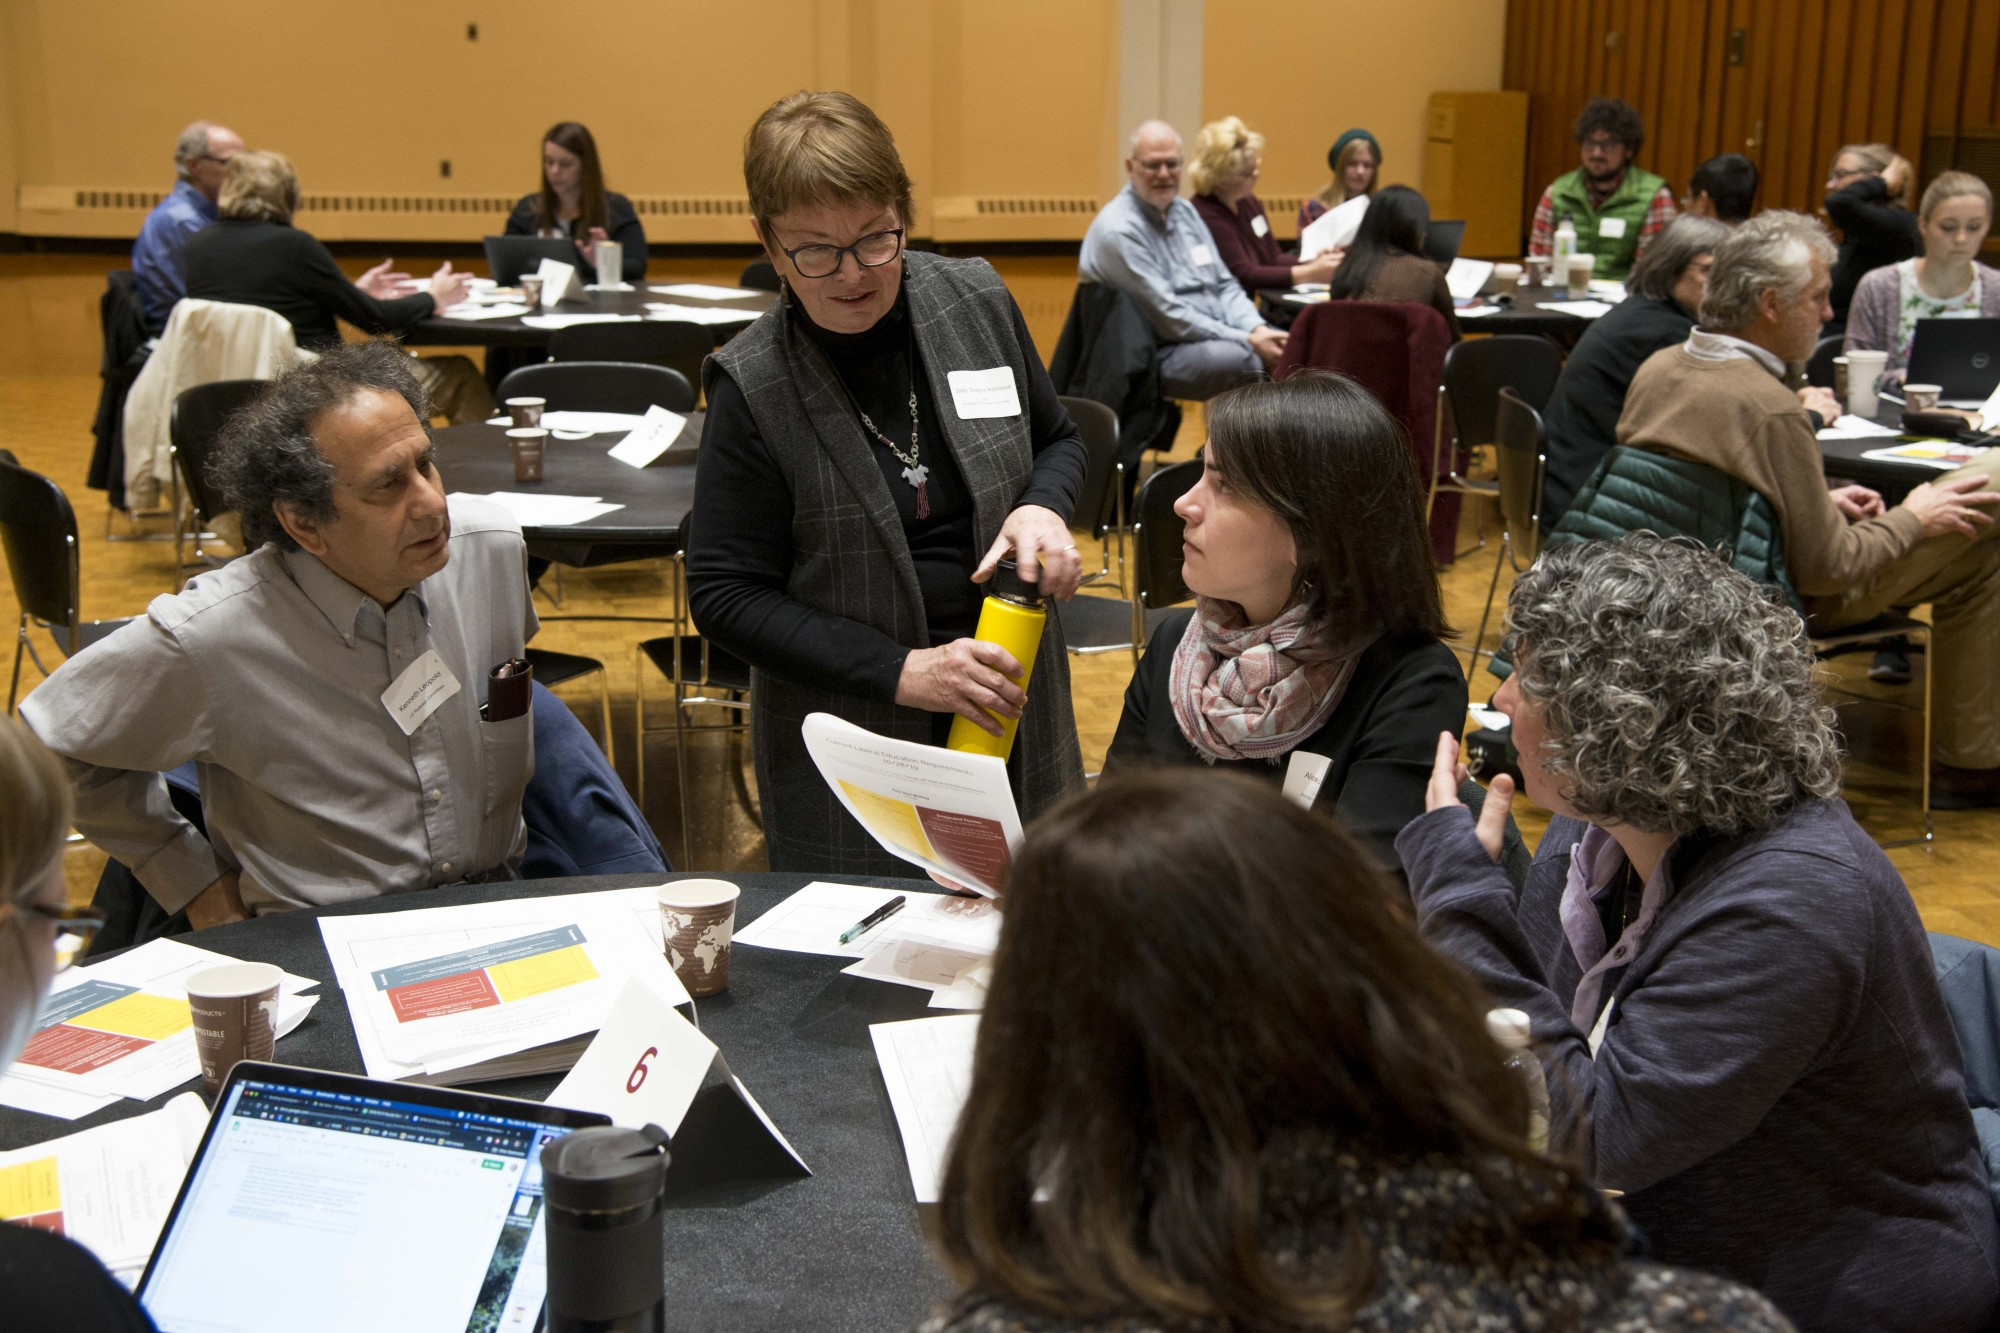 Professor Sally Gregory Kohlstedt, chair of the LE Redesign Committee, speaks with faculty during a forum in the Northstar Ballroom at the St. Paul Student Center on Thursday, Oct. 31. Faculty from various departments offered feedback on proposed changes to liberal education requirements.